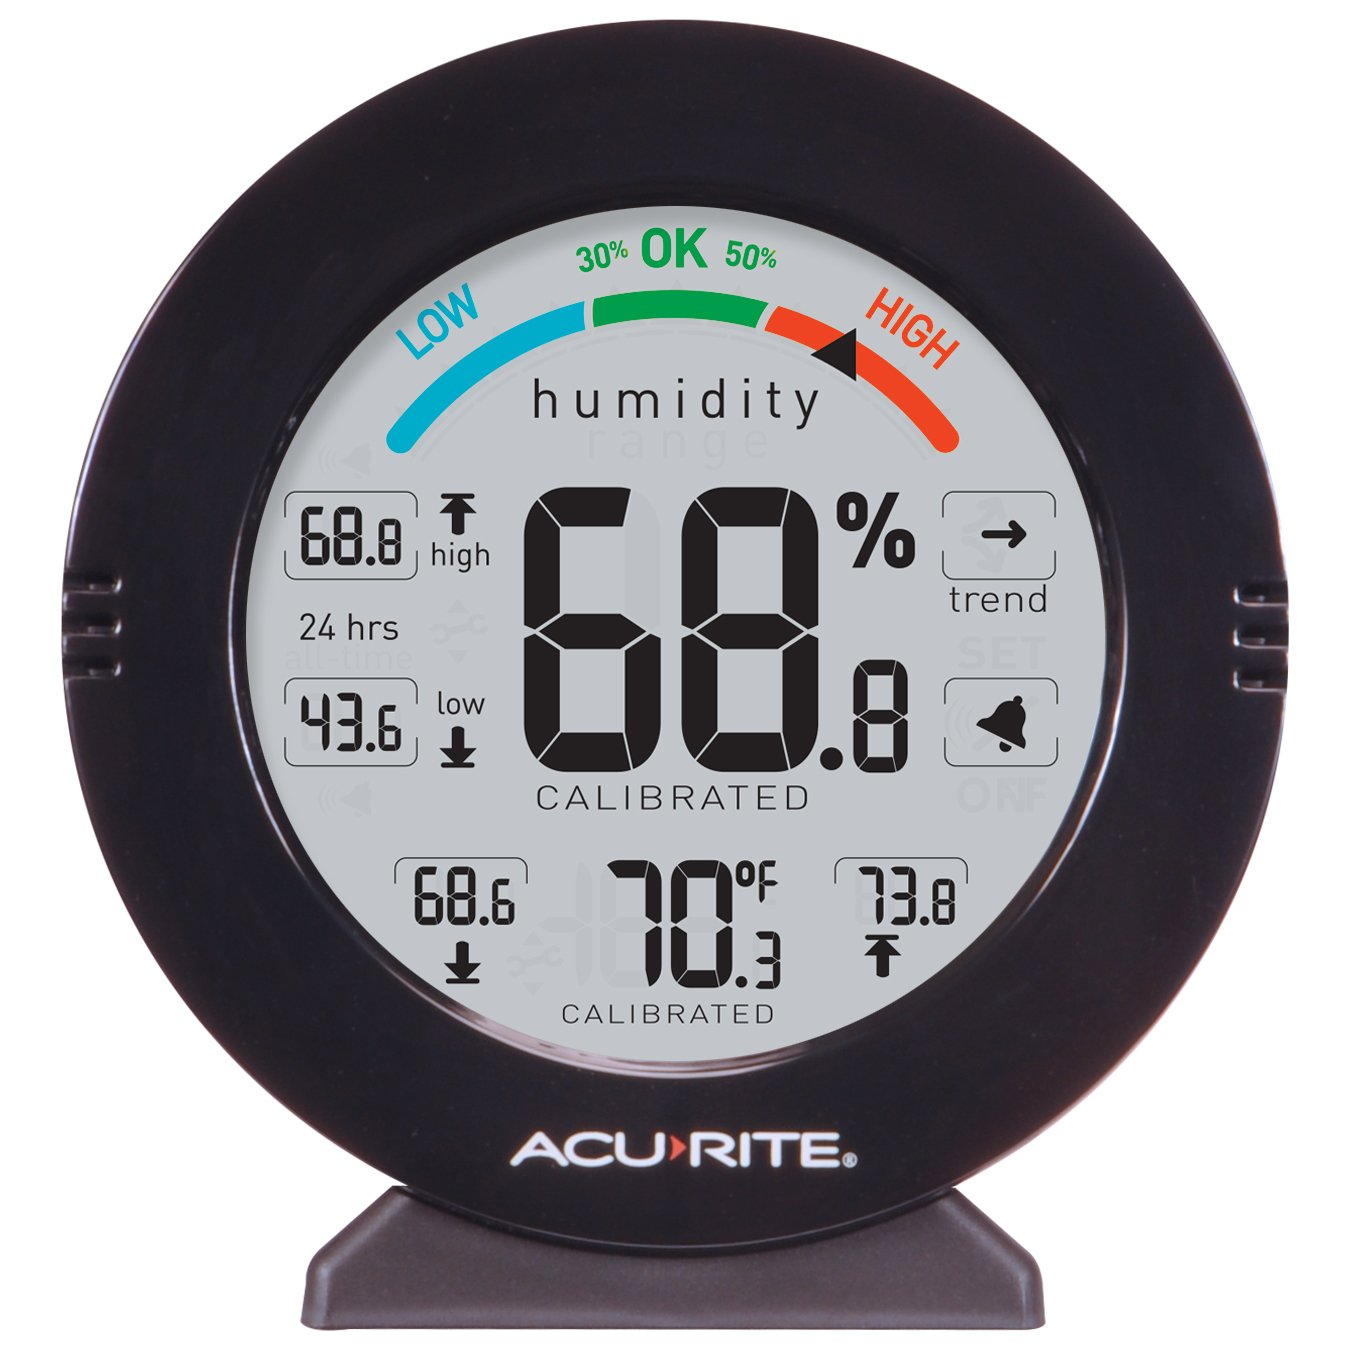 AcuRite 01080 Pro Accuracy Indoor Temperature and Humidity Monitor with Alarms by AcuRite (Image #2)